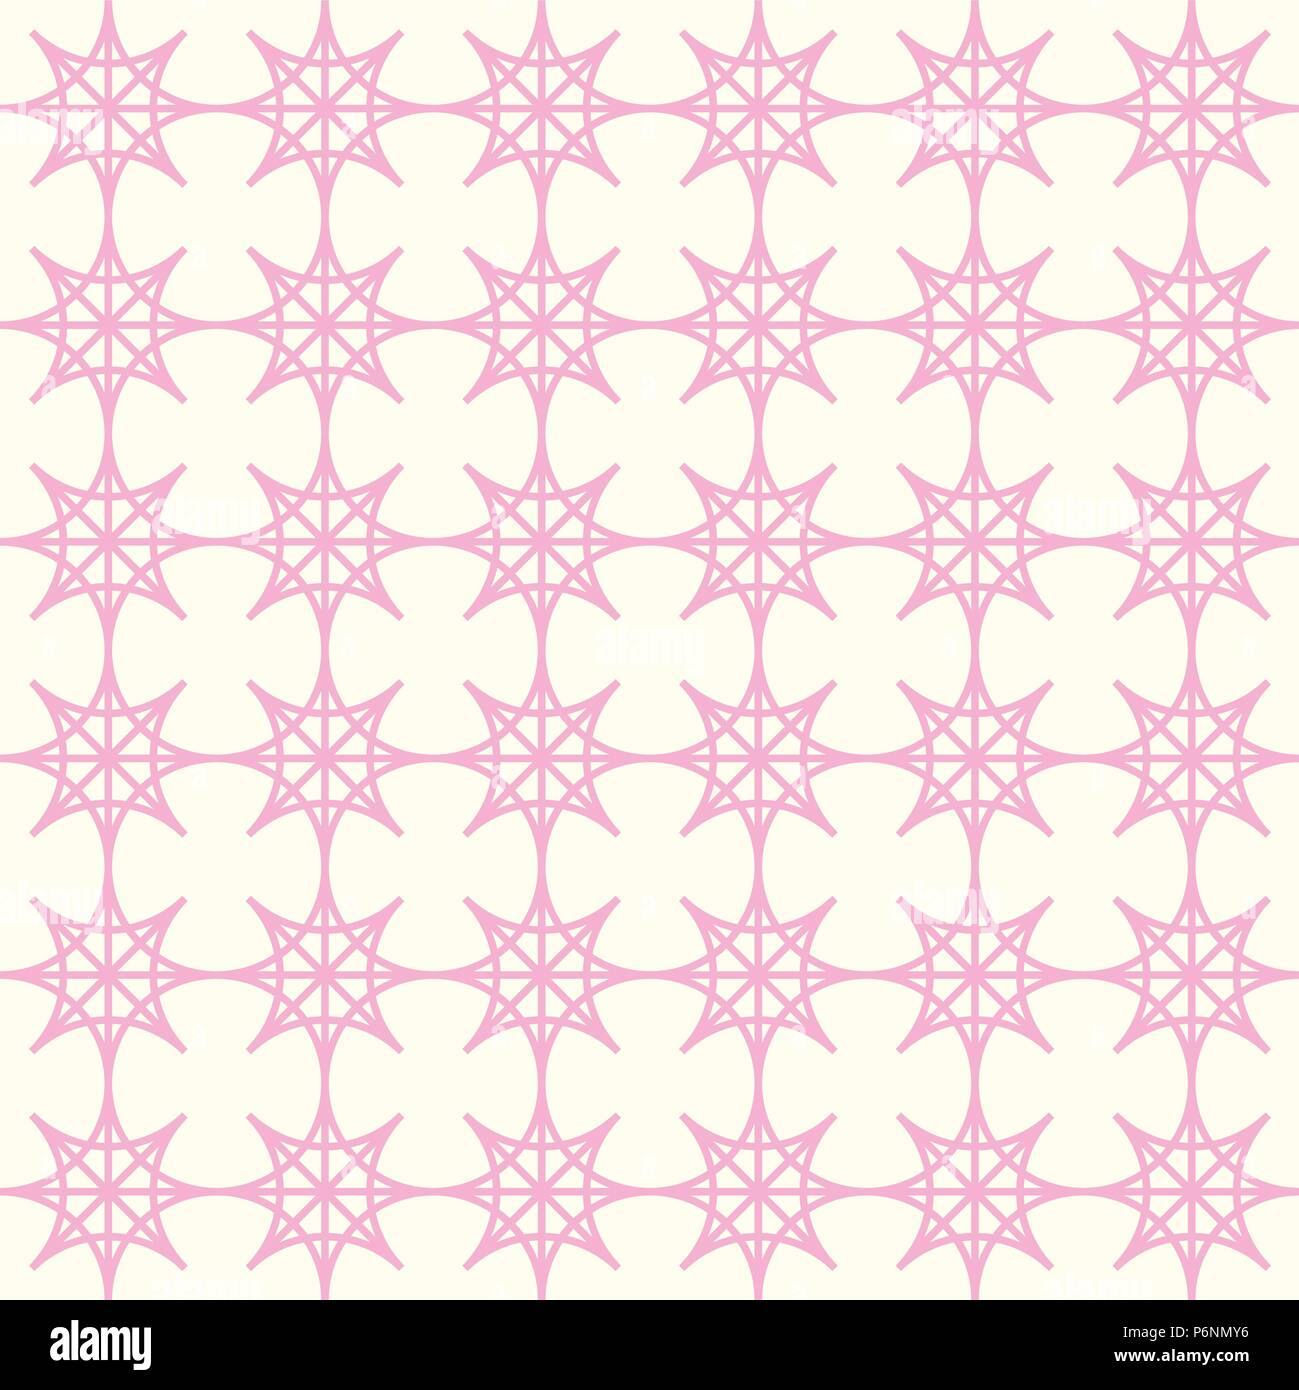 Pink four angle star seamless pattern on pastel background. Abstract star pattern in modern and vintage style for design. - Stock Vector